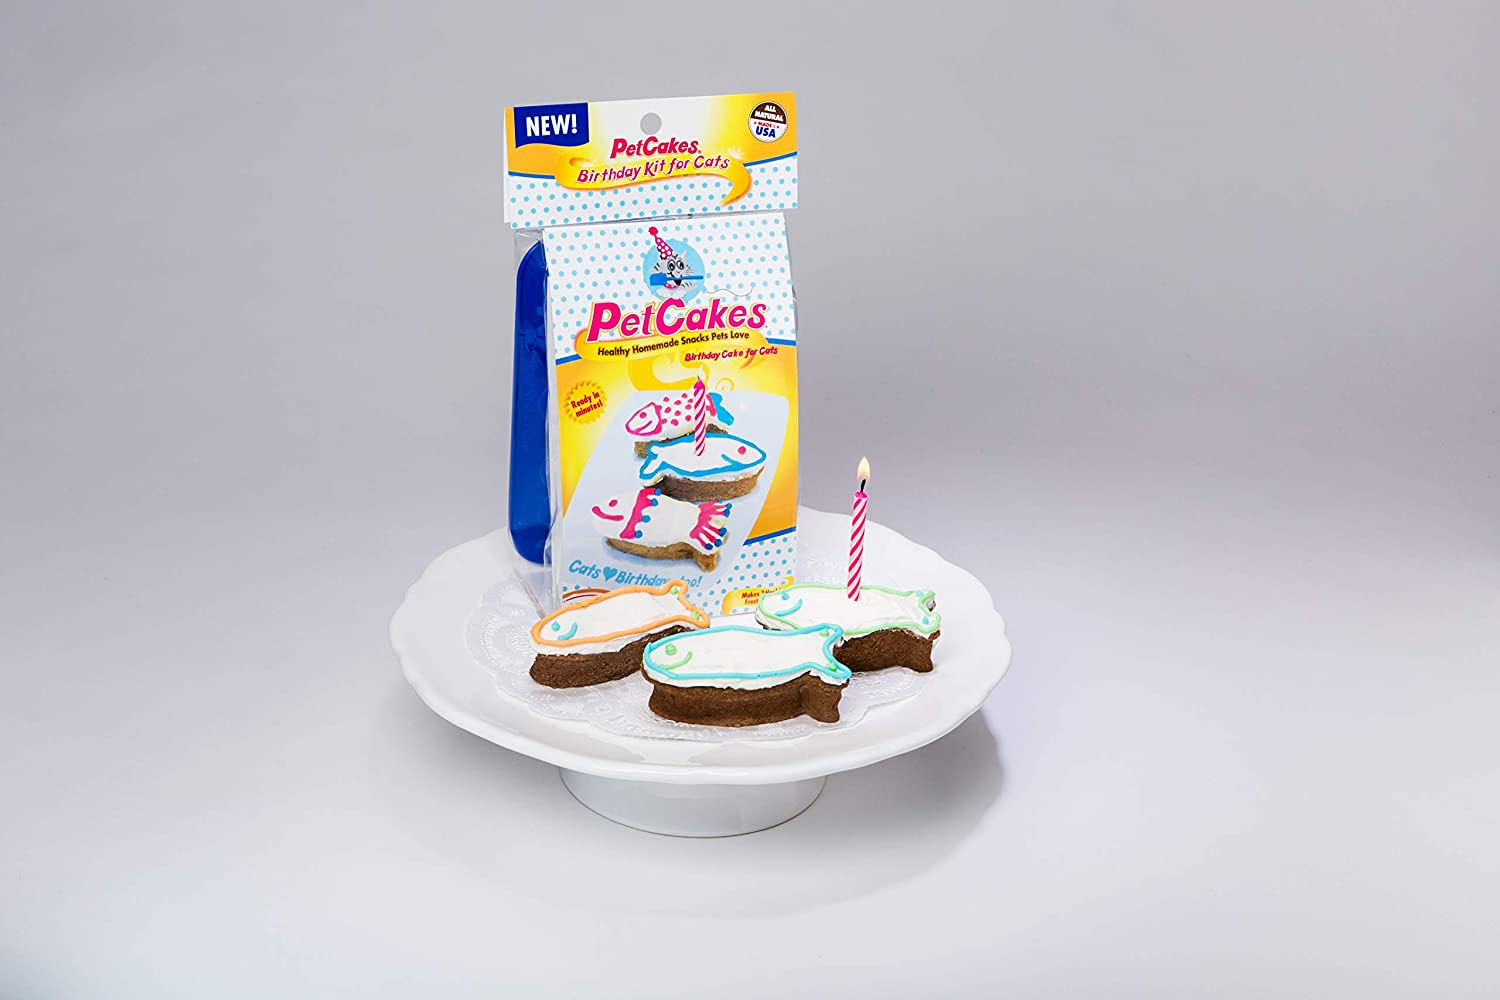 Tremendous Petcakes Cat Birthday Cake Kit Bdr Ct Birthday Cake Refill Cat Personalised Birthday Cards Veneteletsinfo